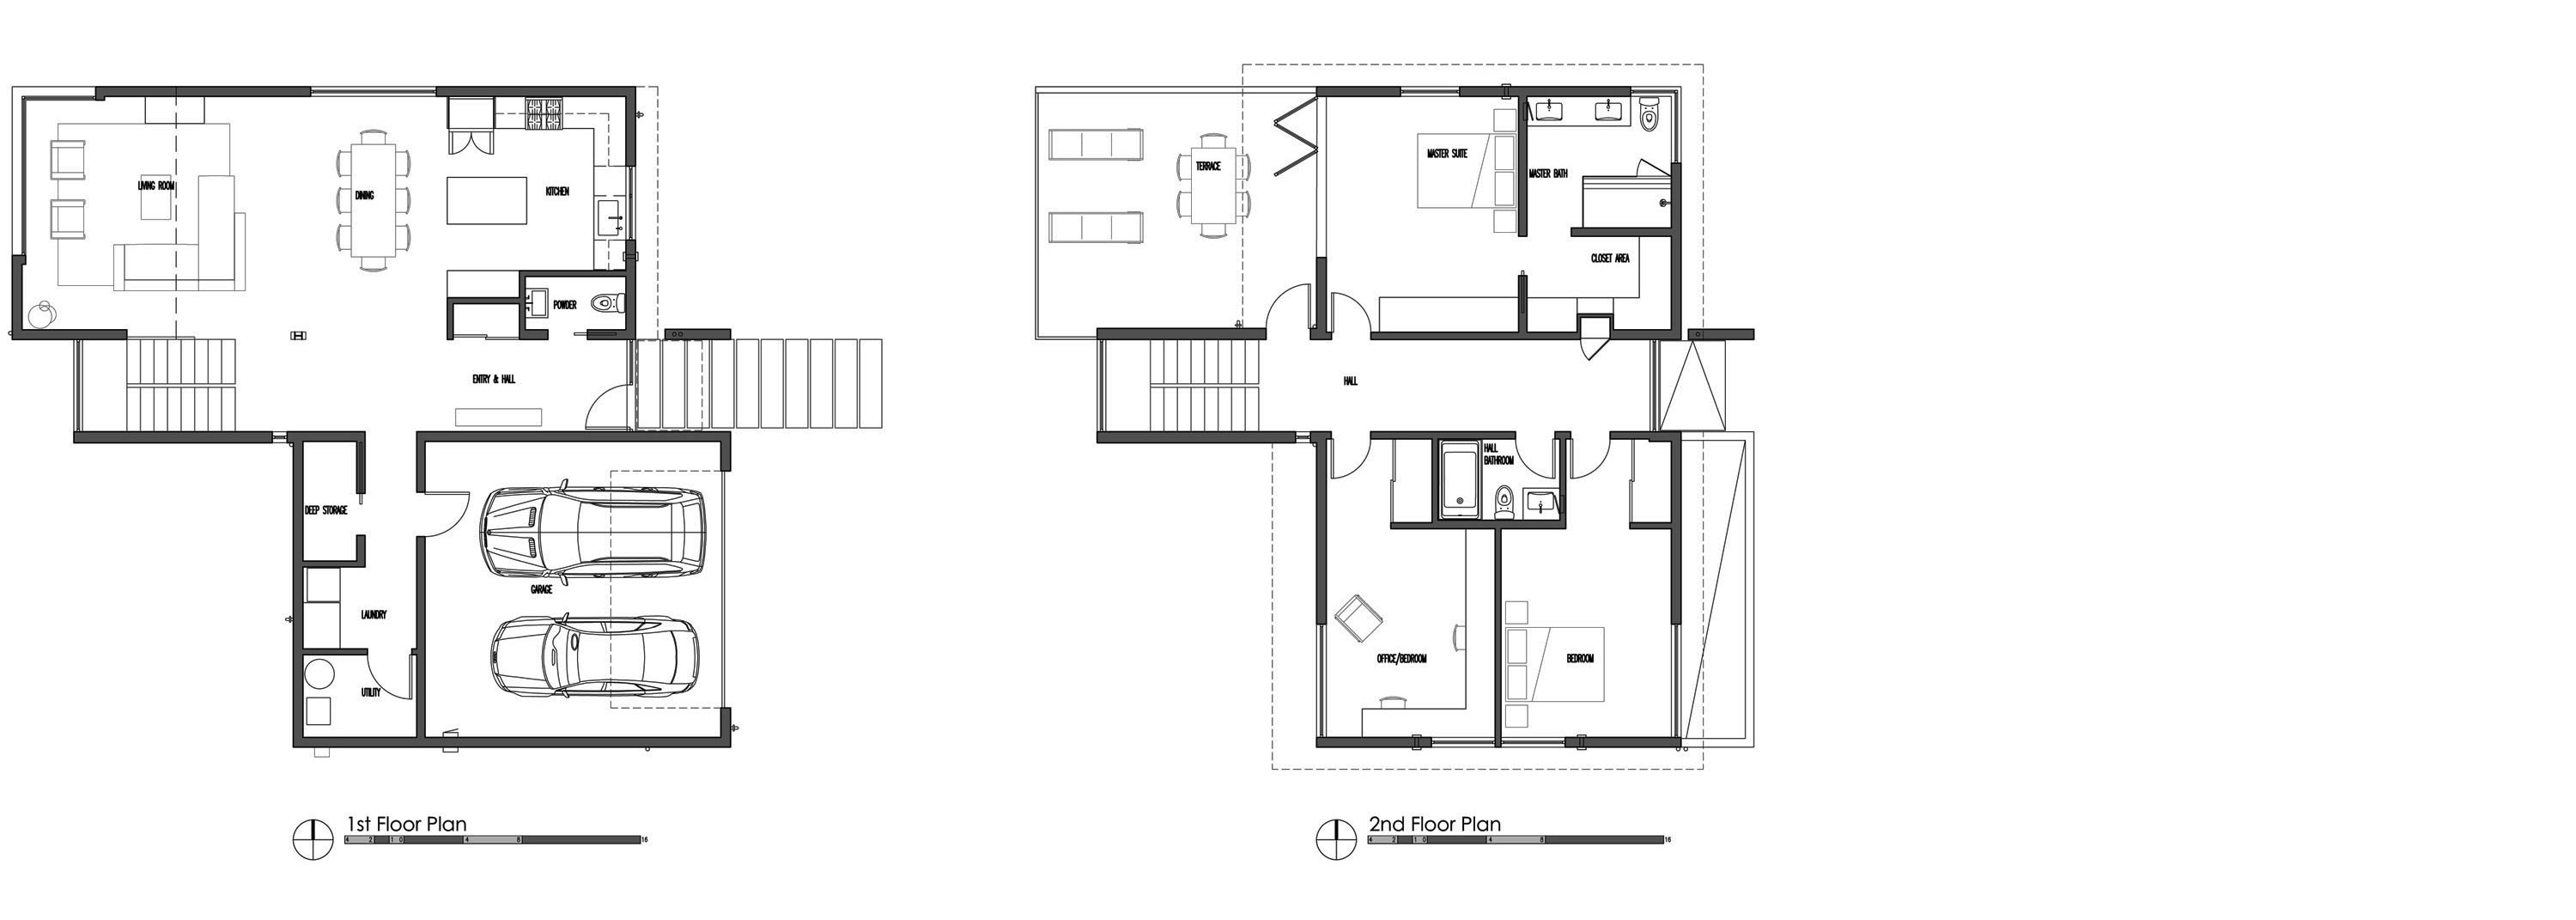 Lovely floor plans with dimensions house floor ideas for 3000 sq ft gym layout